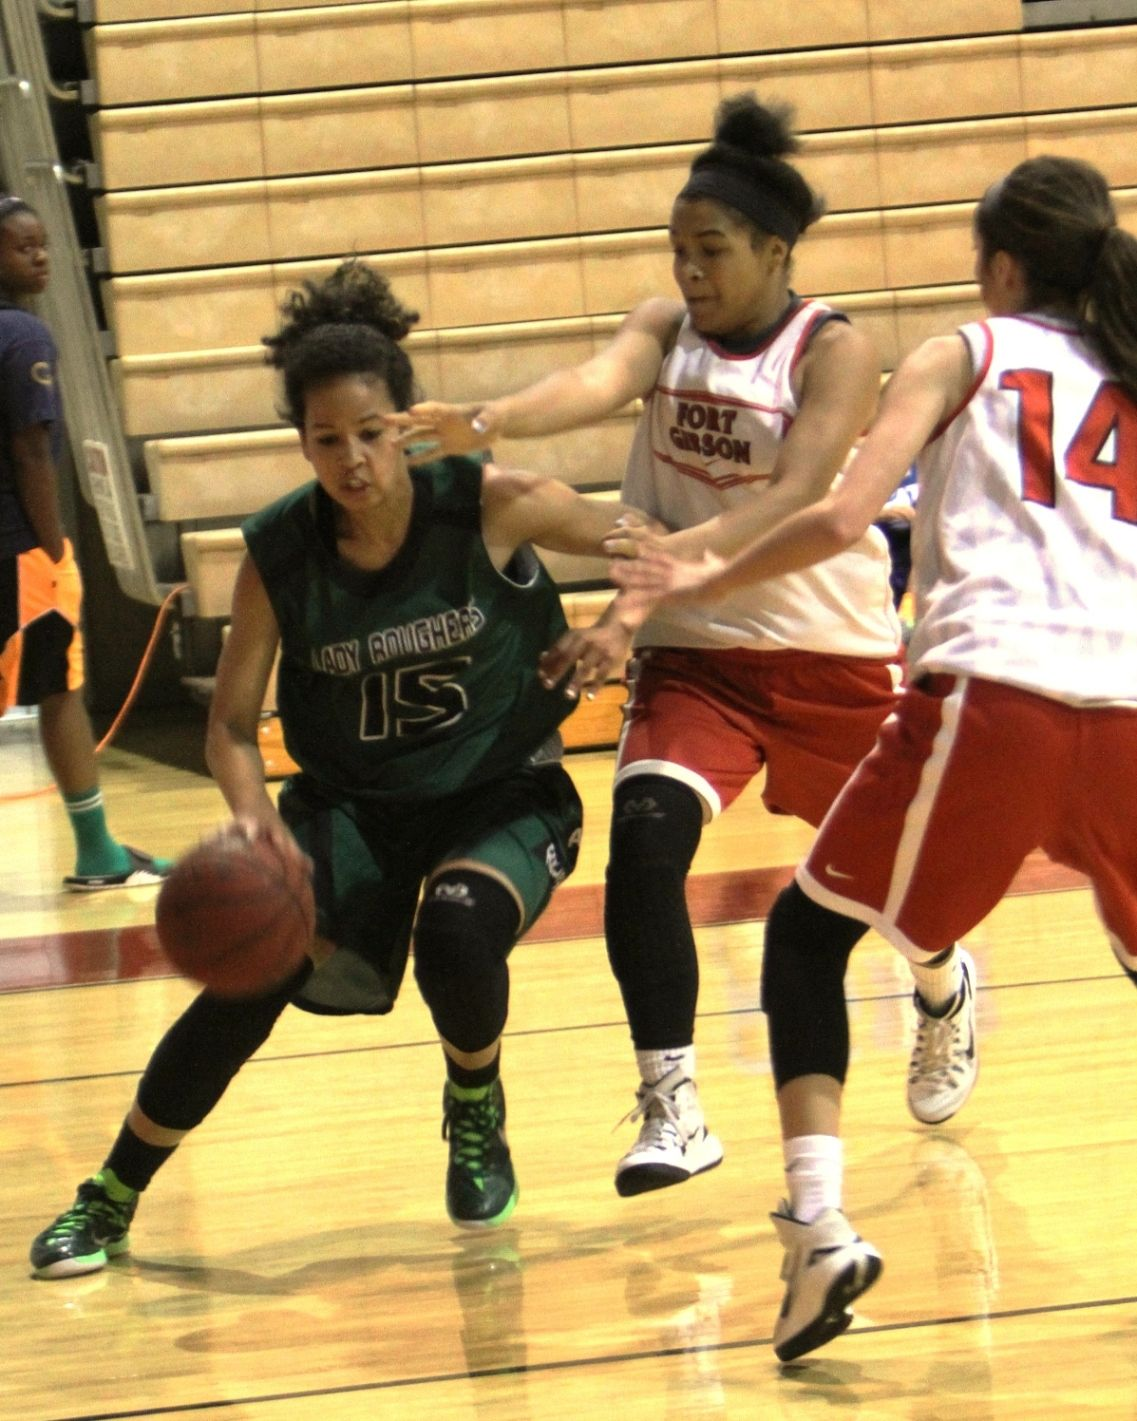 Other Team Sports: Summer Schooling: Some Of Area's Best Prep Girls Hoops